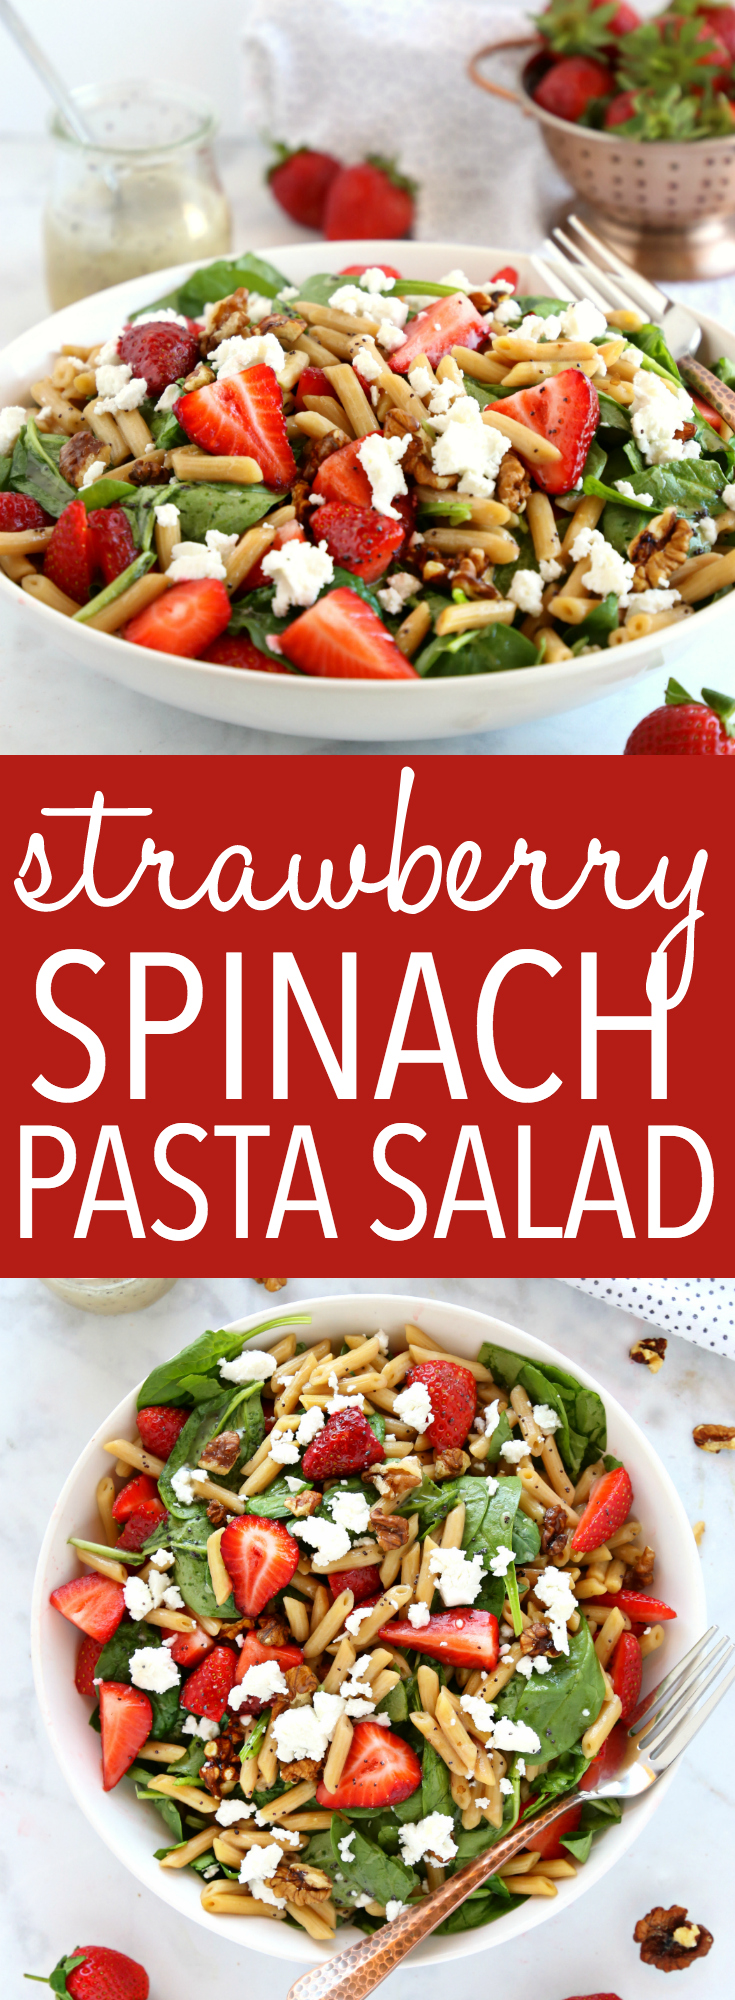 This Strawberry Spinach Pasta Salad with Poppy Seed Dressing is the perfect summer salad recipe featuring delicious pasta, in-season fruits and veggies, nuts, goat cheese and a healthy Poppy Seed Dressing! Recipe from thebusybaker.ca! #pastasalad #summersalad #strawberryspinachsalad #strawberryrecipe via @busybakerblog